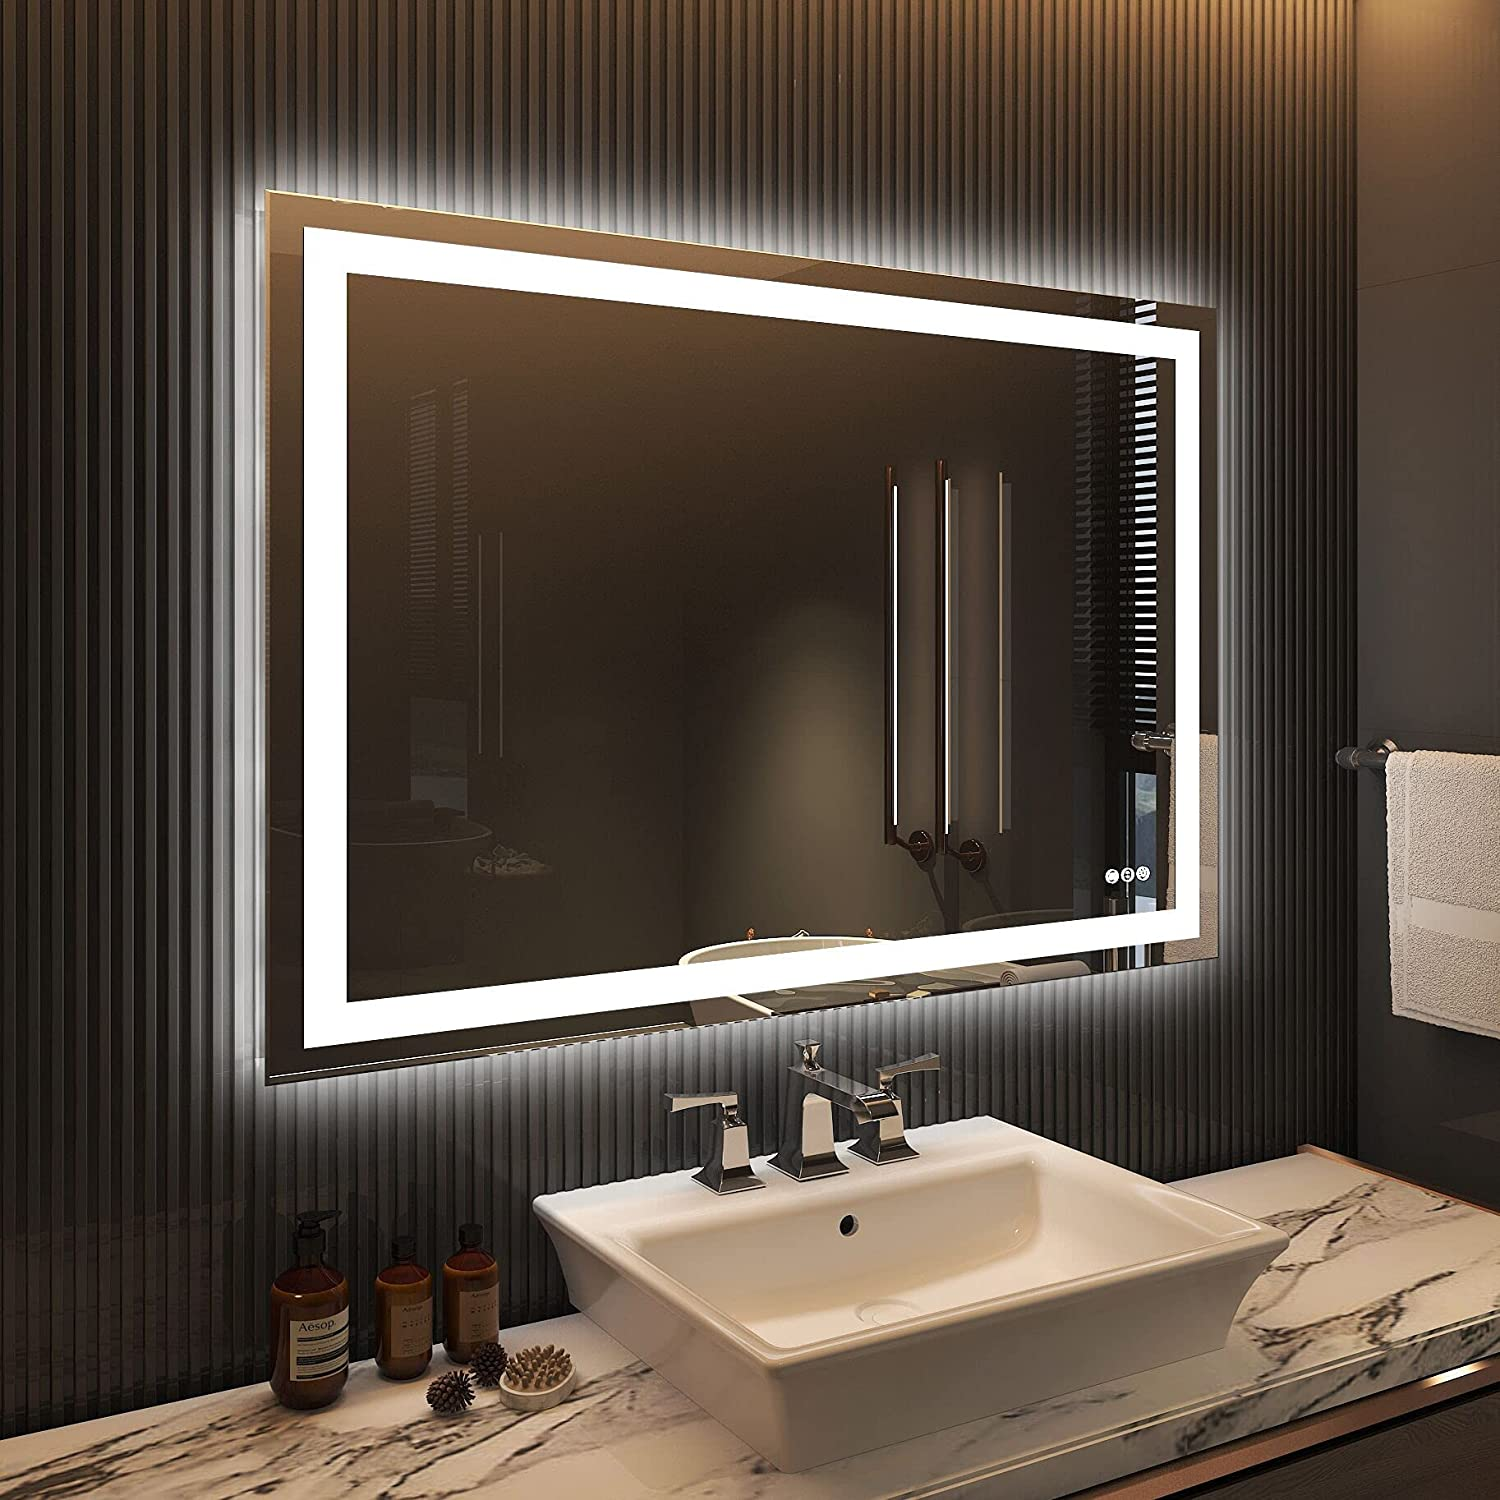 Buy Amorho Led Lighted Bathroom Mirror 48x36 Large Shatter Proof Mirrors With Double Lights Dimmable Anti Fog Backlit Front Lighted Online In Turkey B08pj1ypdf